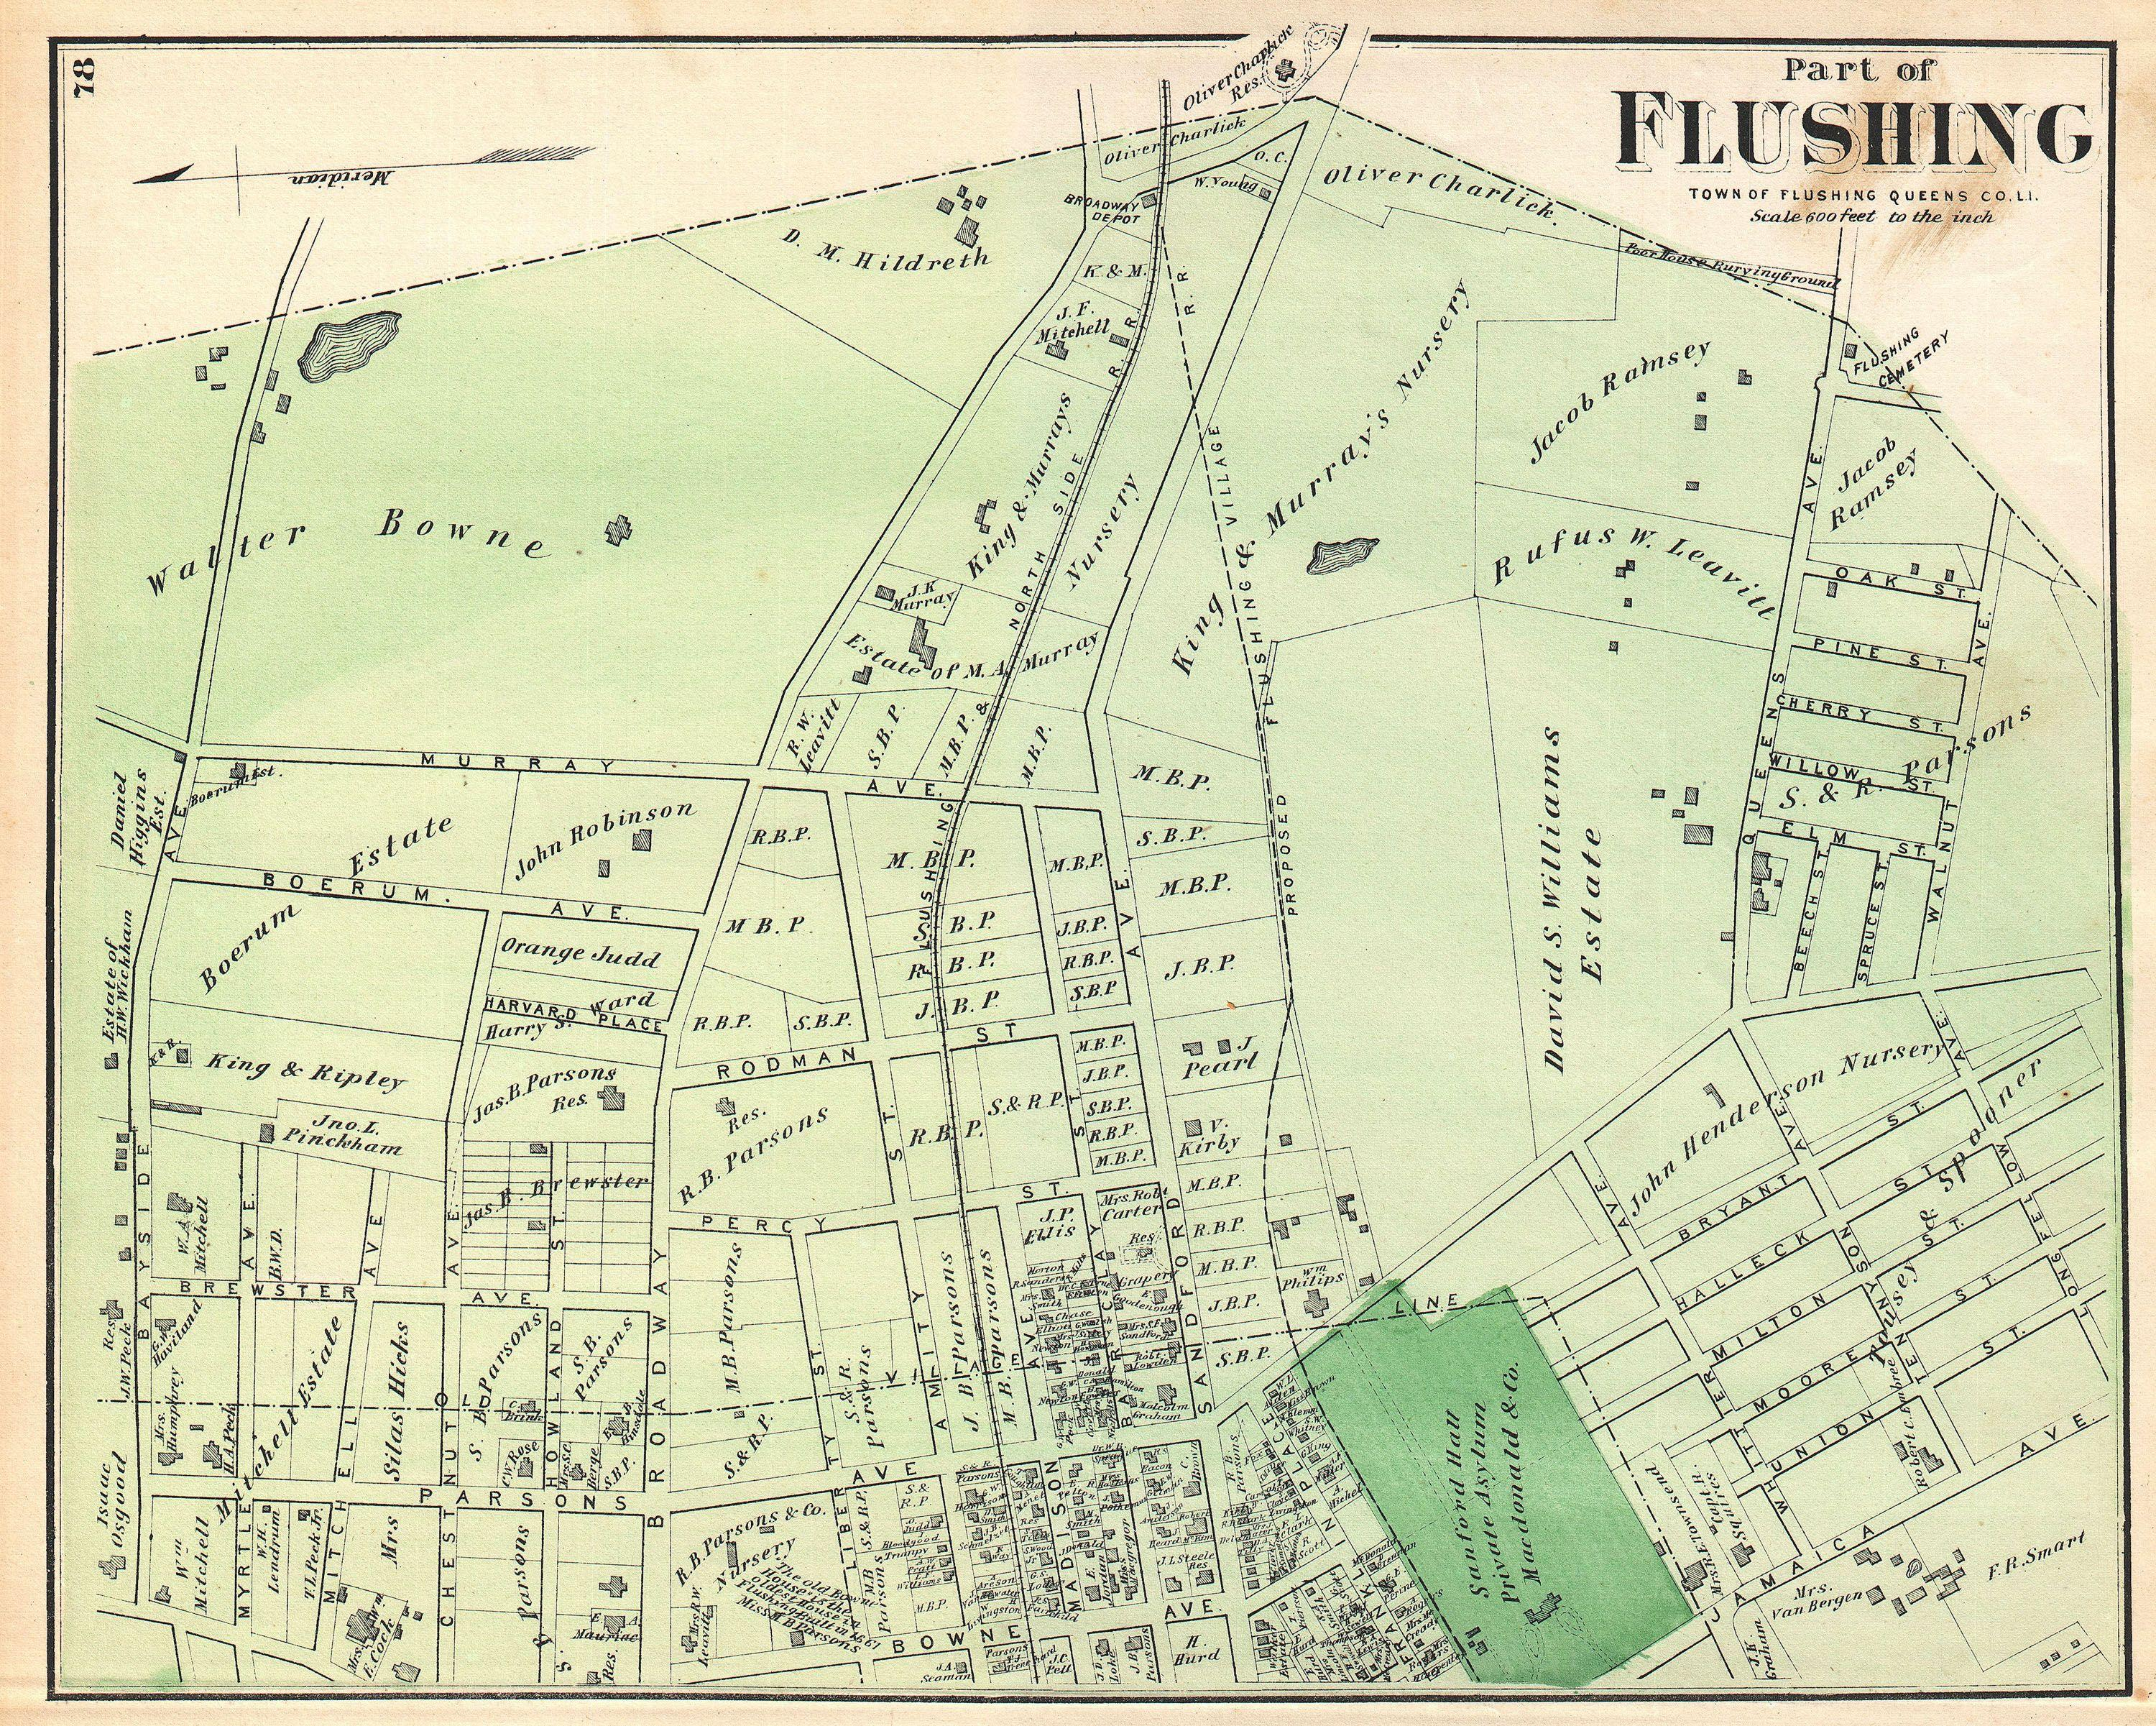 long island city ny map with File 1873 Beers Map Of Part Of Flushing  Queens  New York City   Geographicus   Flushing78 Beers 1873 on File 1873 Beers Map of Fort Hamilton  Brooklyn  New York City   Geographicus   FortHamilton Beers 1873 also Manhasset further Canarsie Brooklyn New York further 3754942340 moreover Essential North Fork Wine Guide Map.